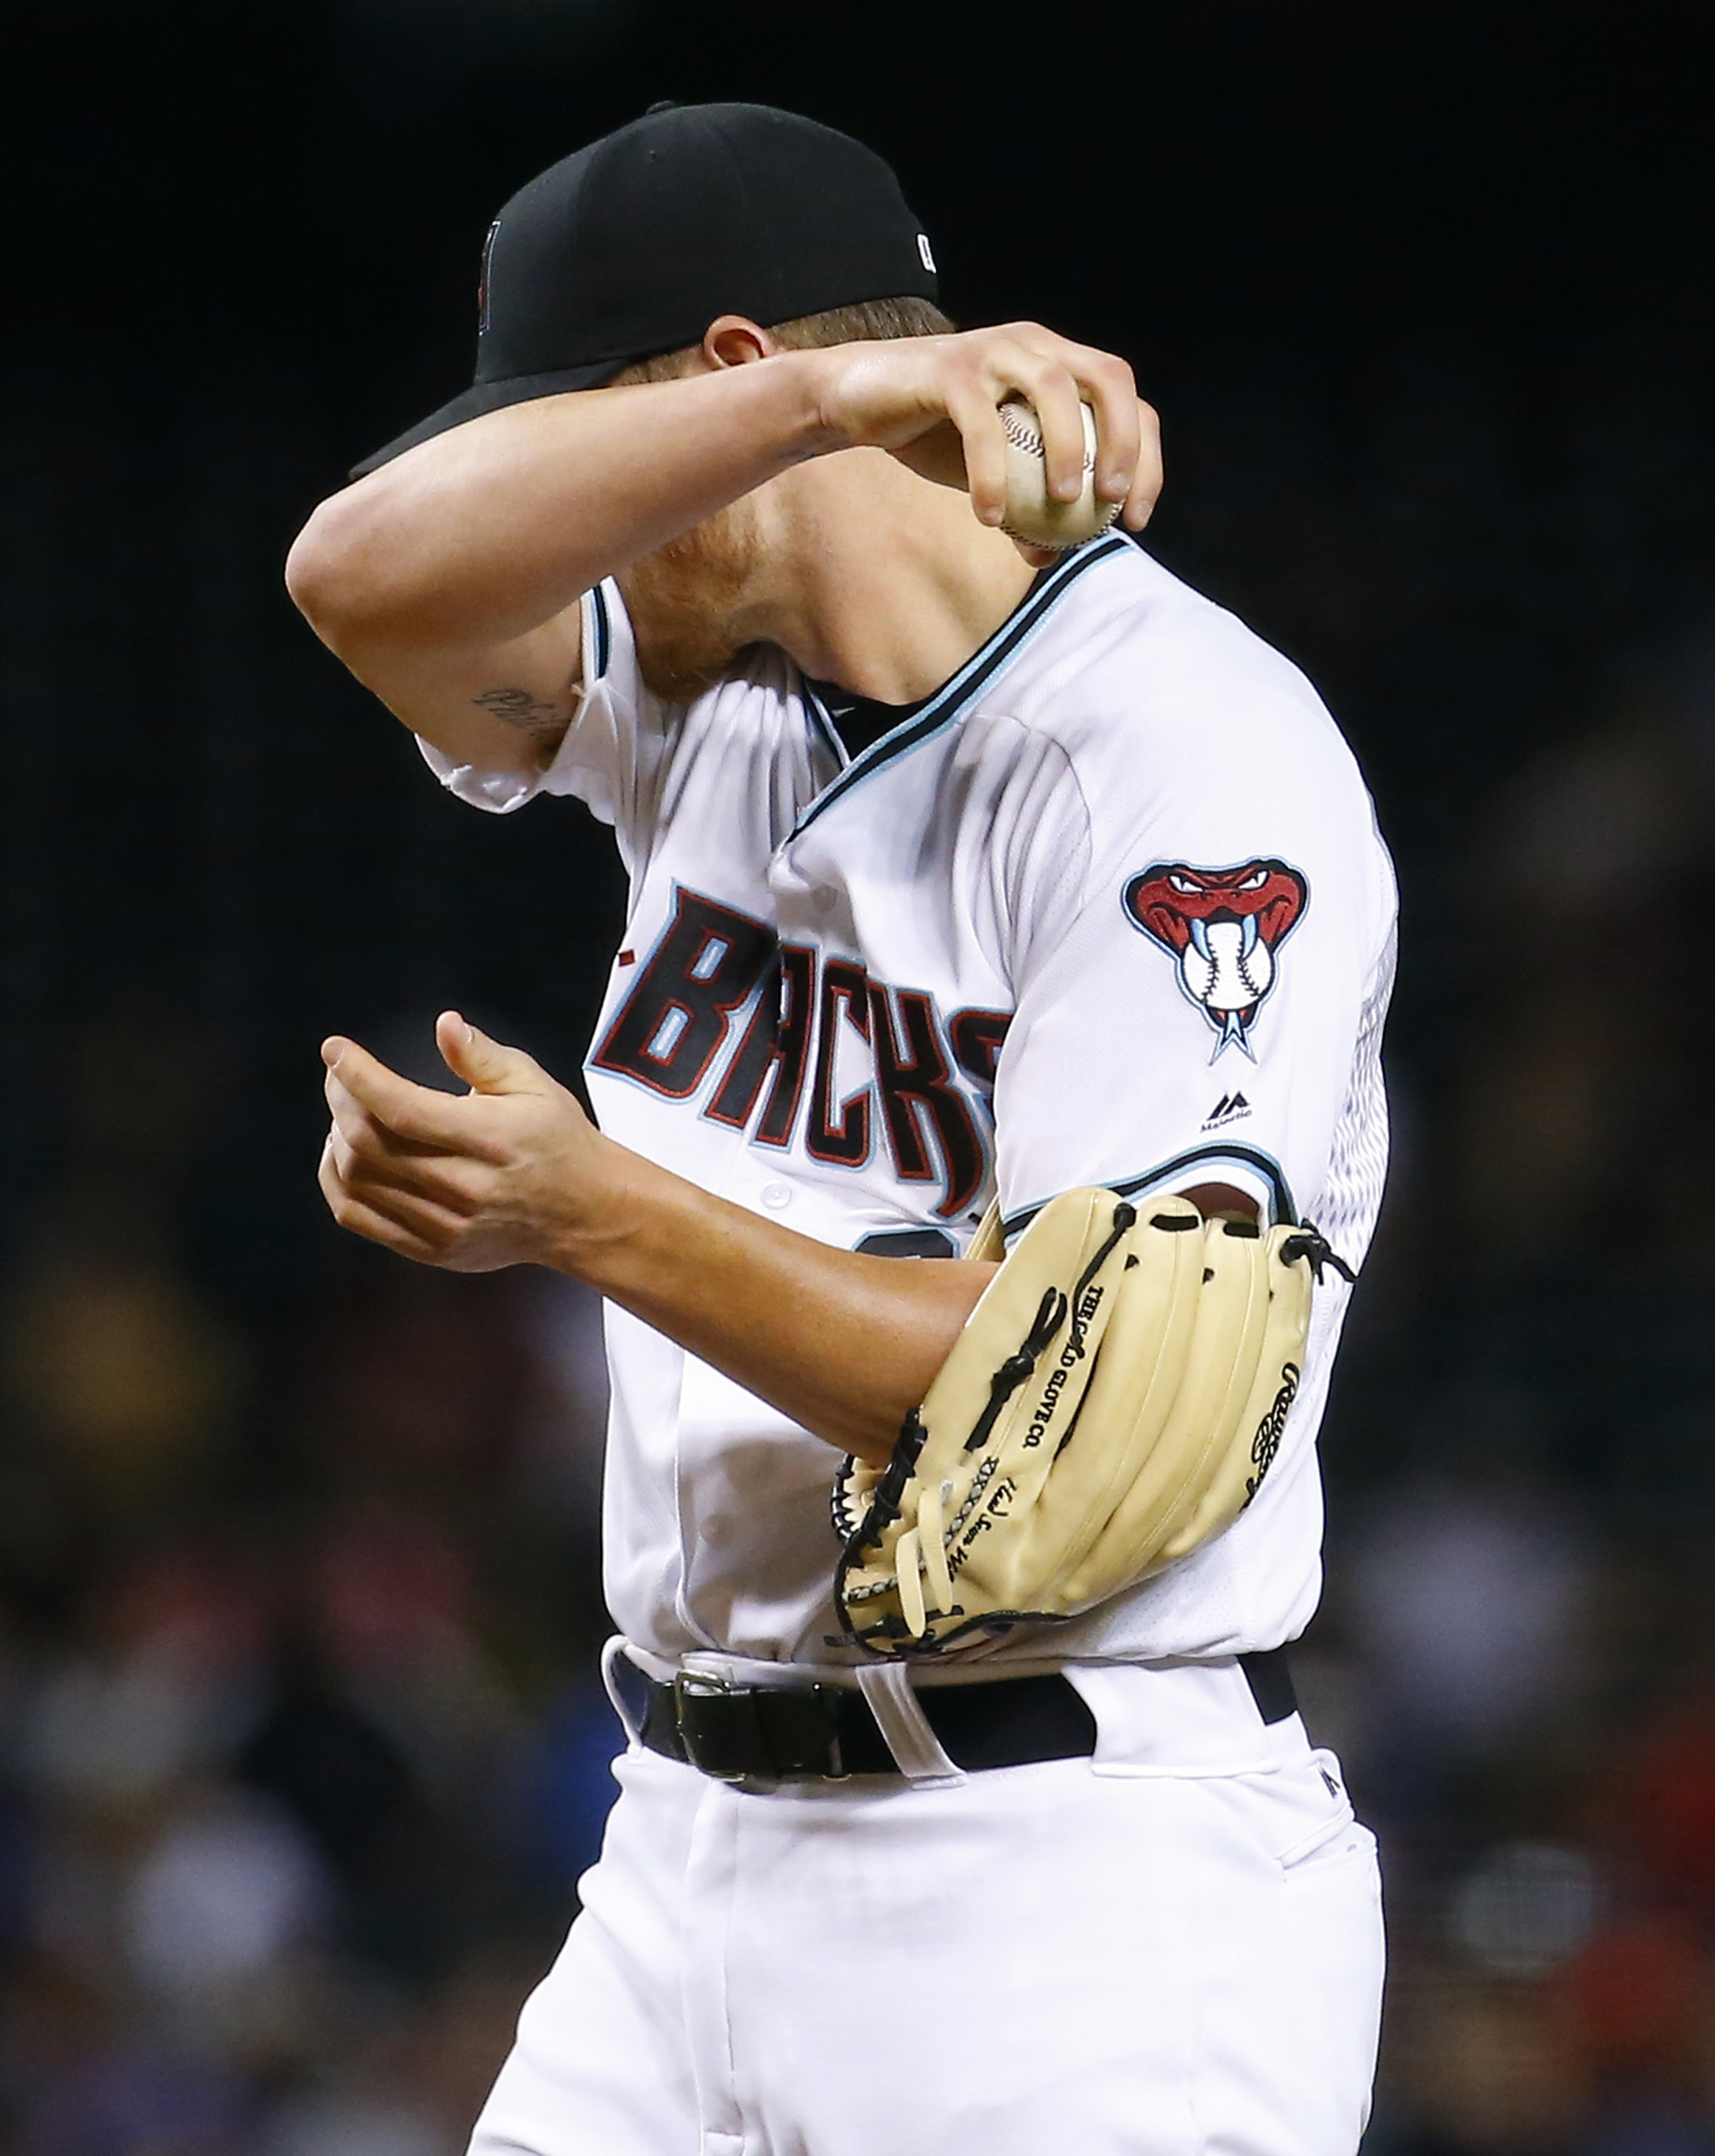 Arizona Diamondbacks starting pitcher Shelby Miller wipes his face after giving up a three run home run against the St. Louis Cardinals during the fifth inning of a baseball game, Tuesday, April 26, 2016, in Phoenix. (AP Photo/Matt York)